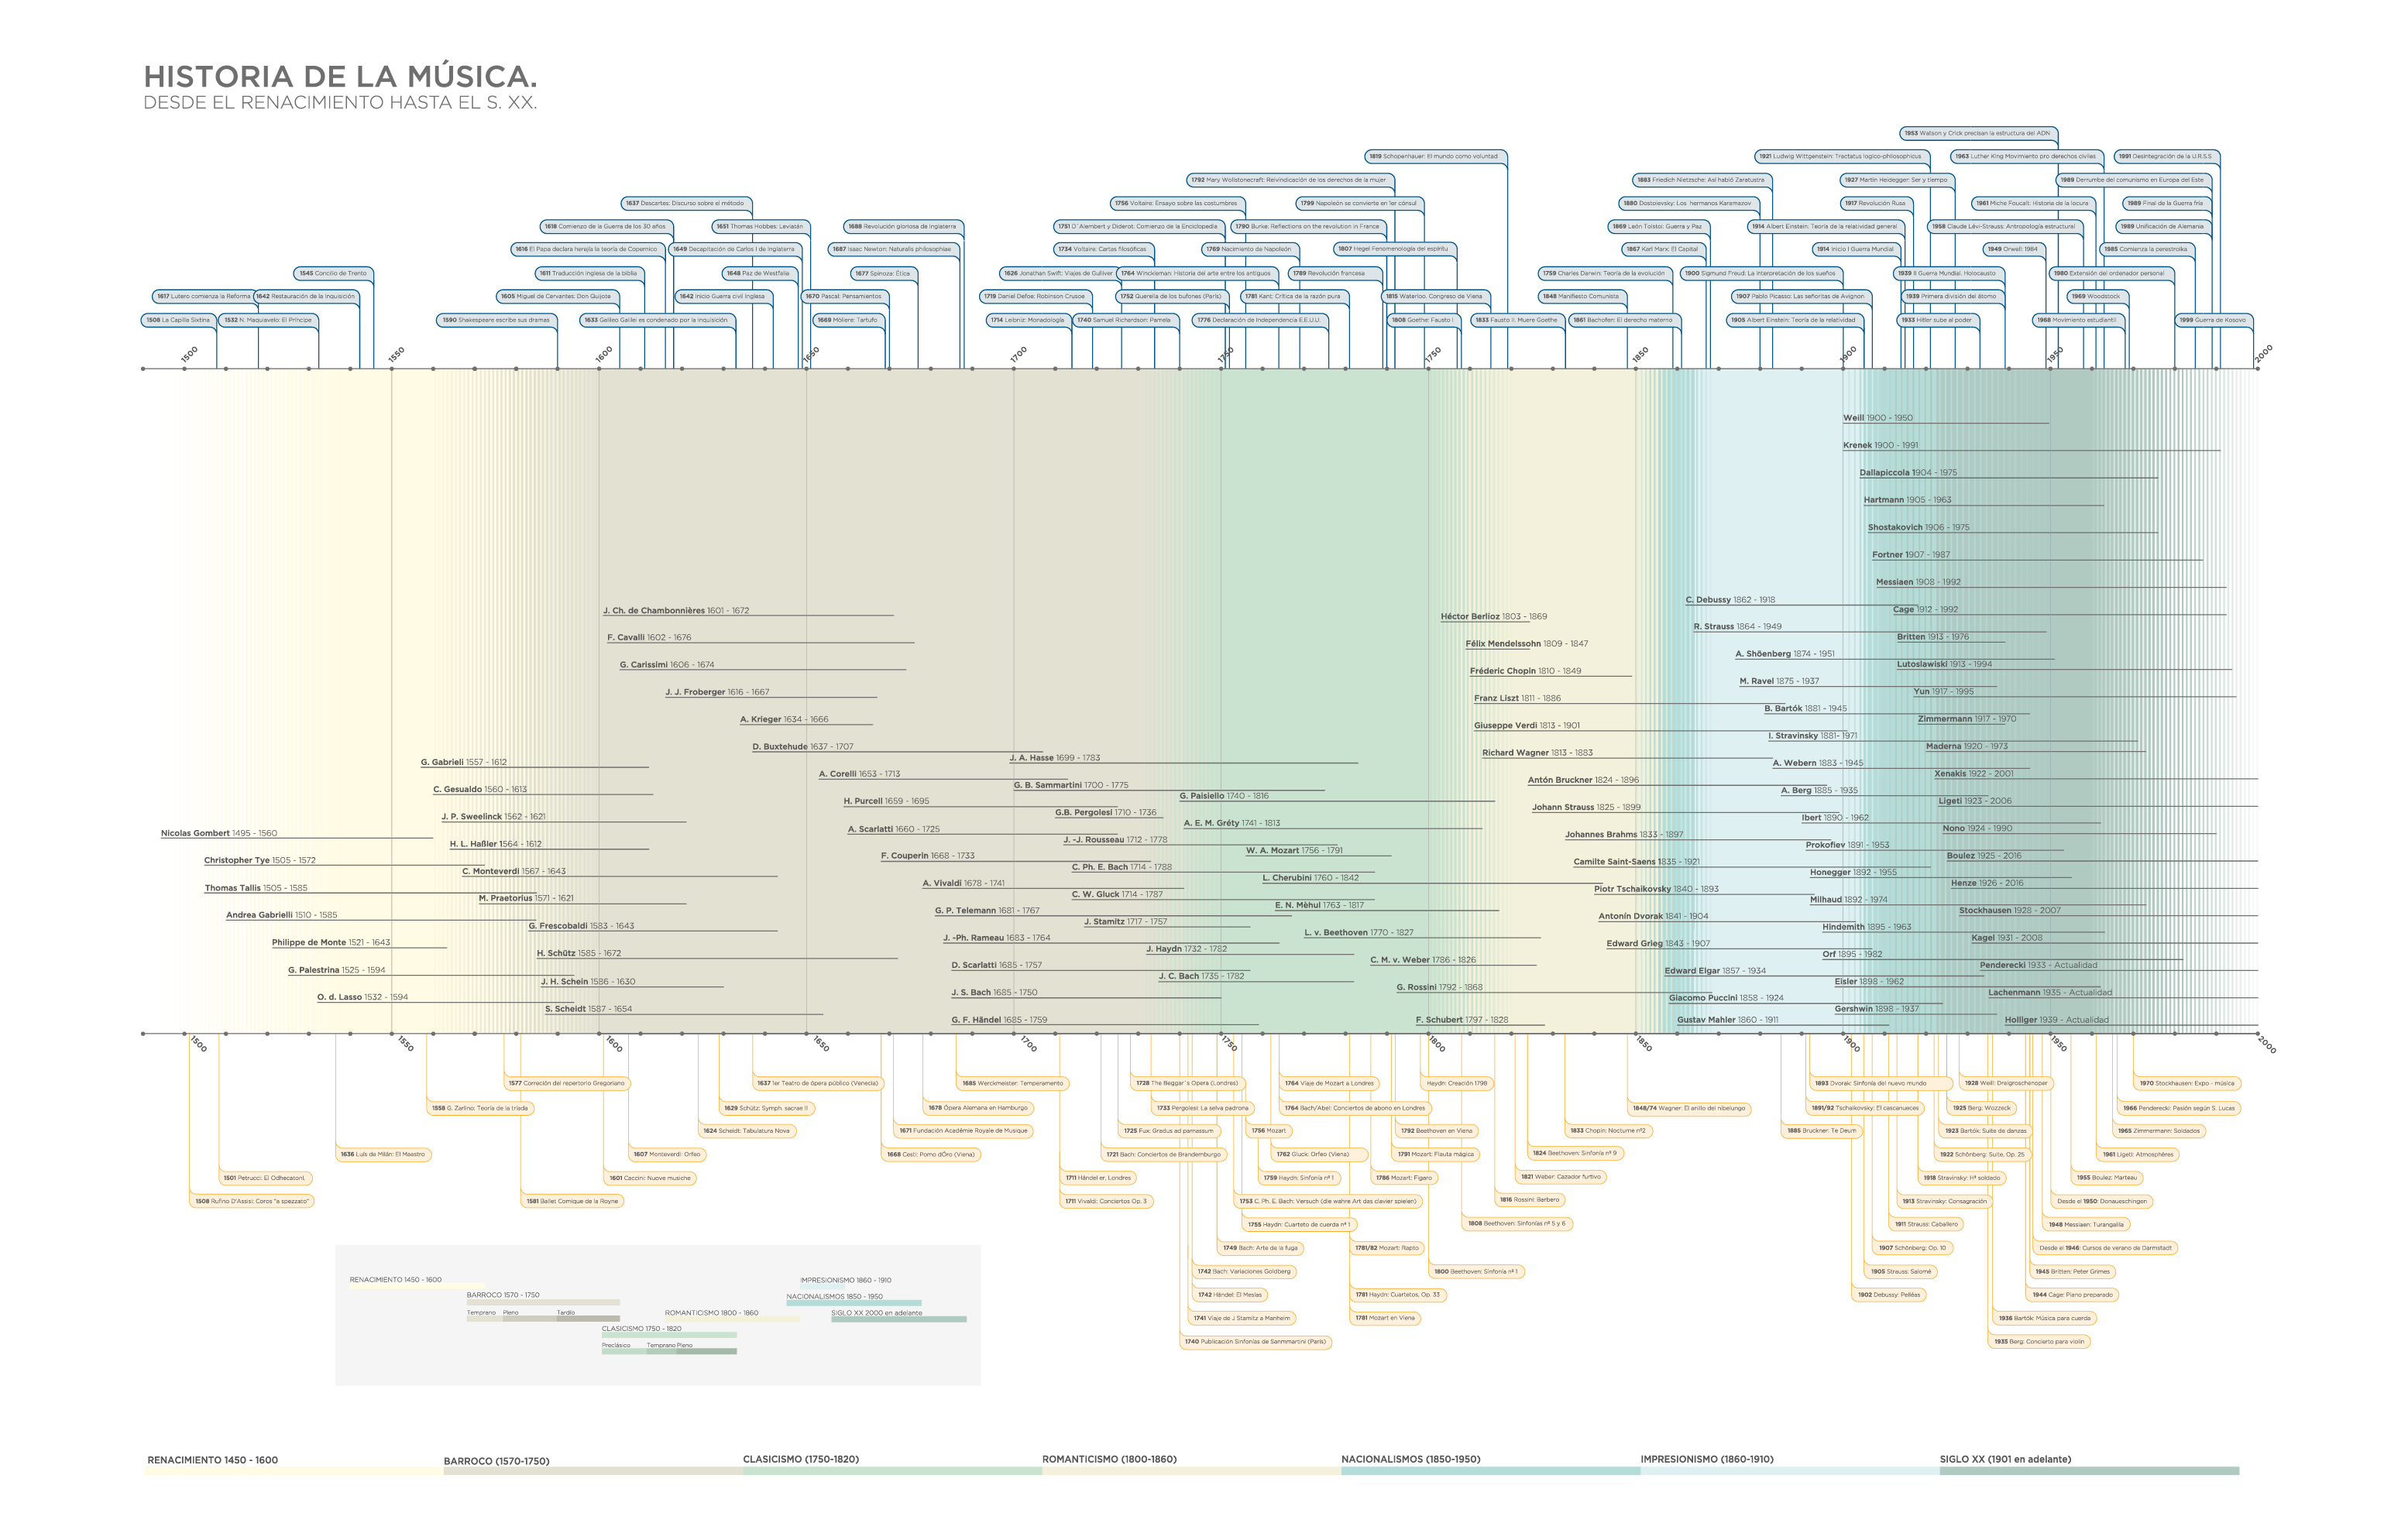 Data visualizations about music, digital timeline about musicians, music pieces and general culture